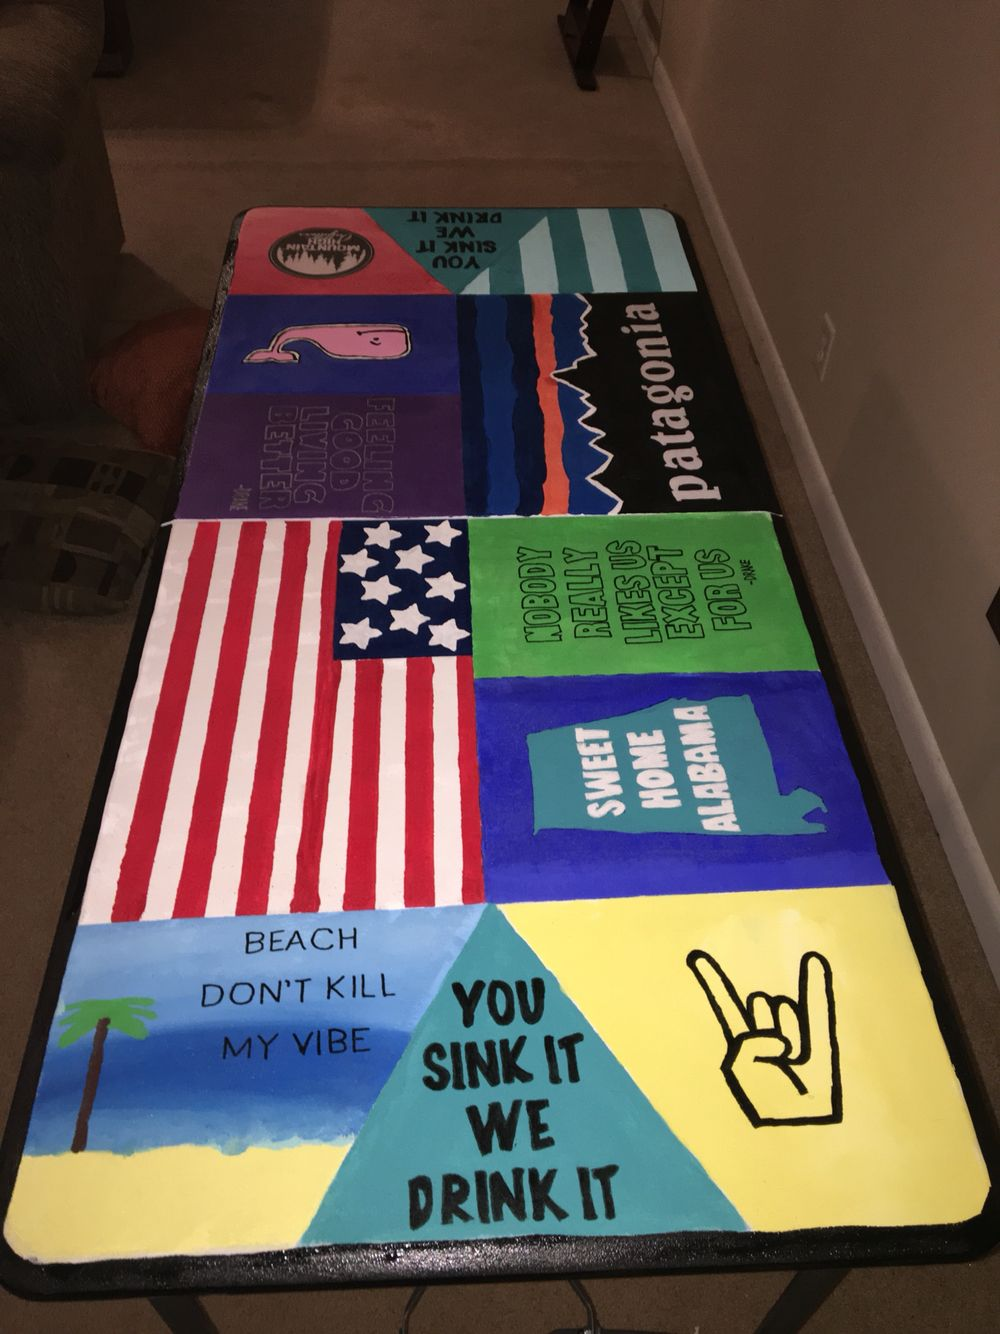 Hockey beer pong table - Beer Pong Table More